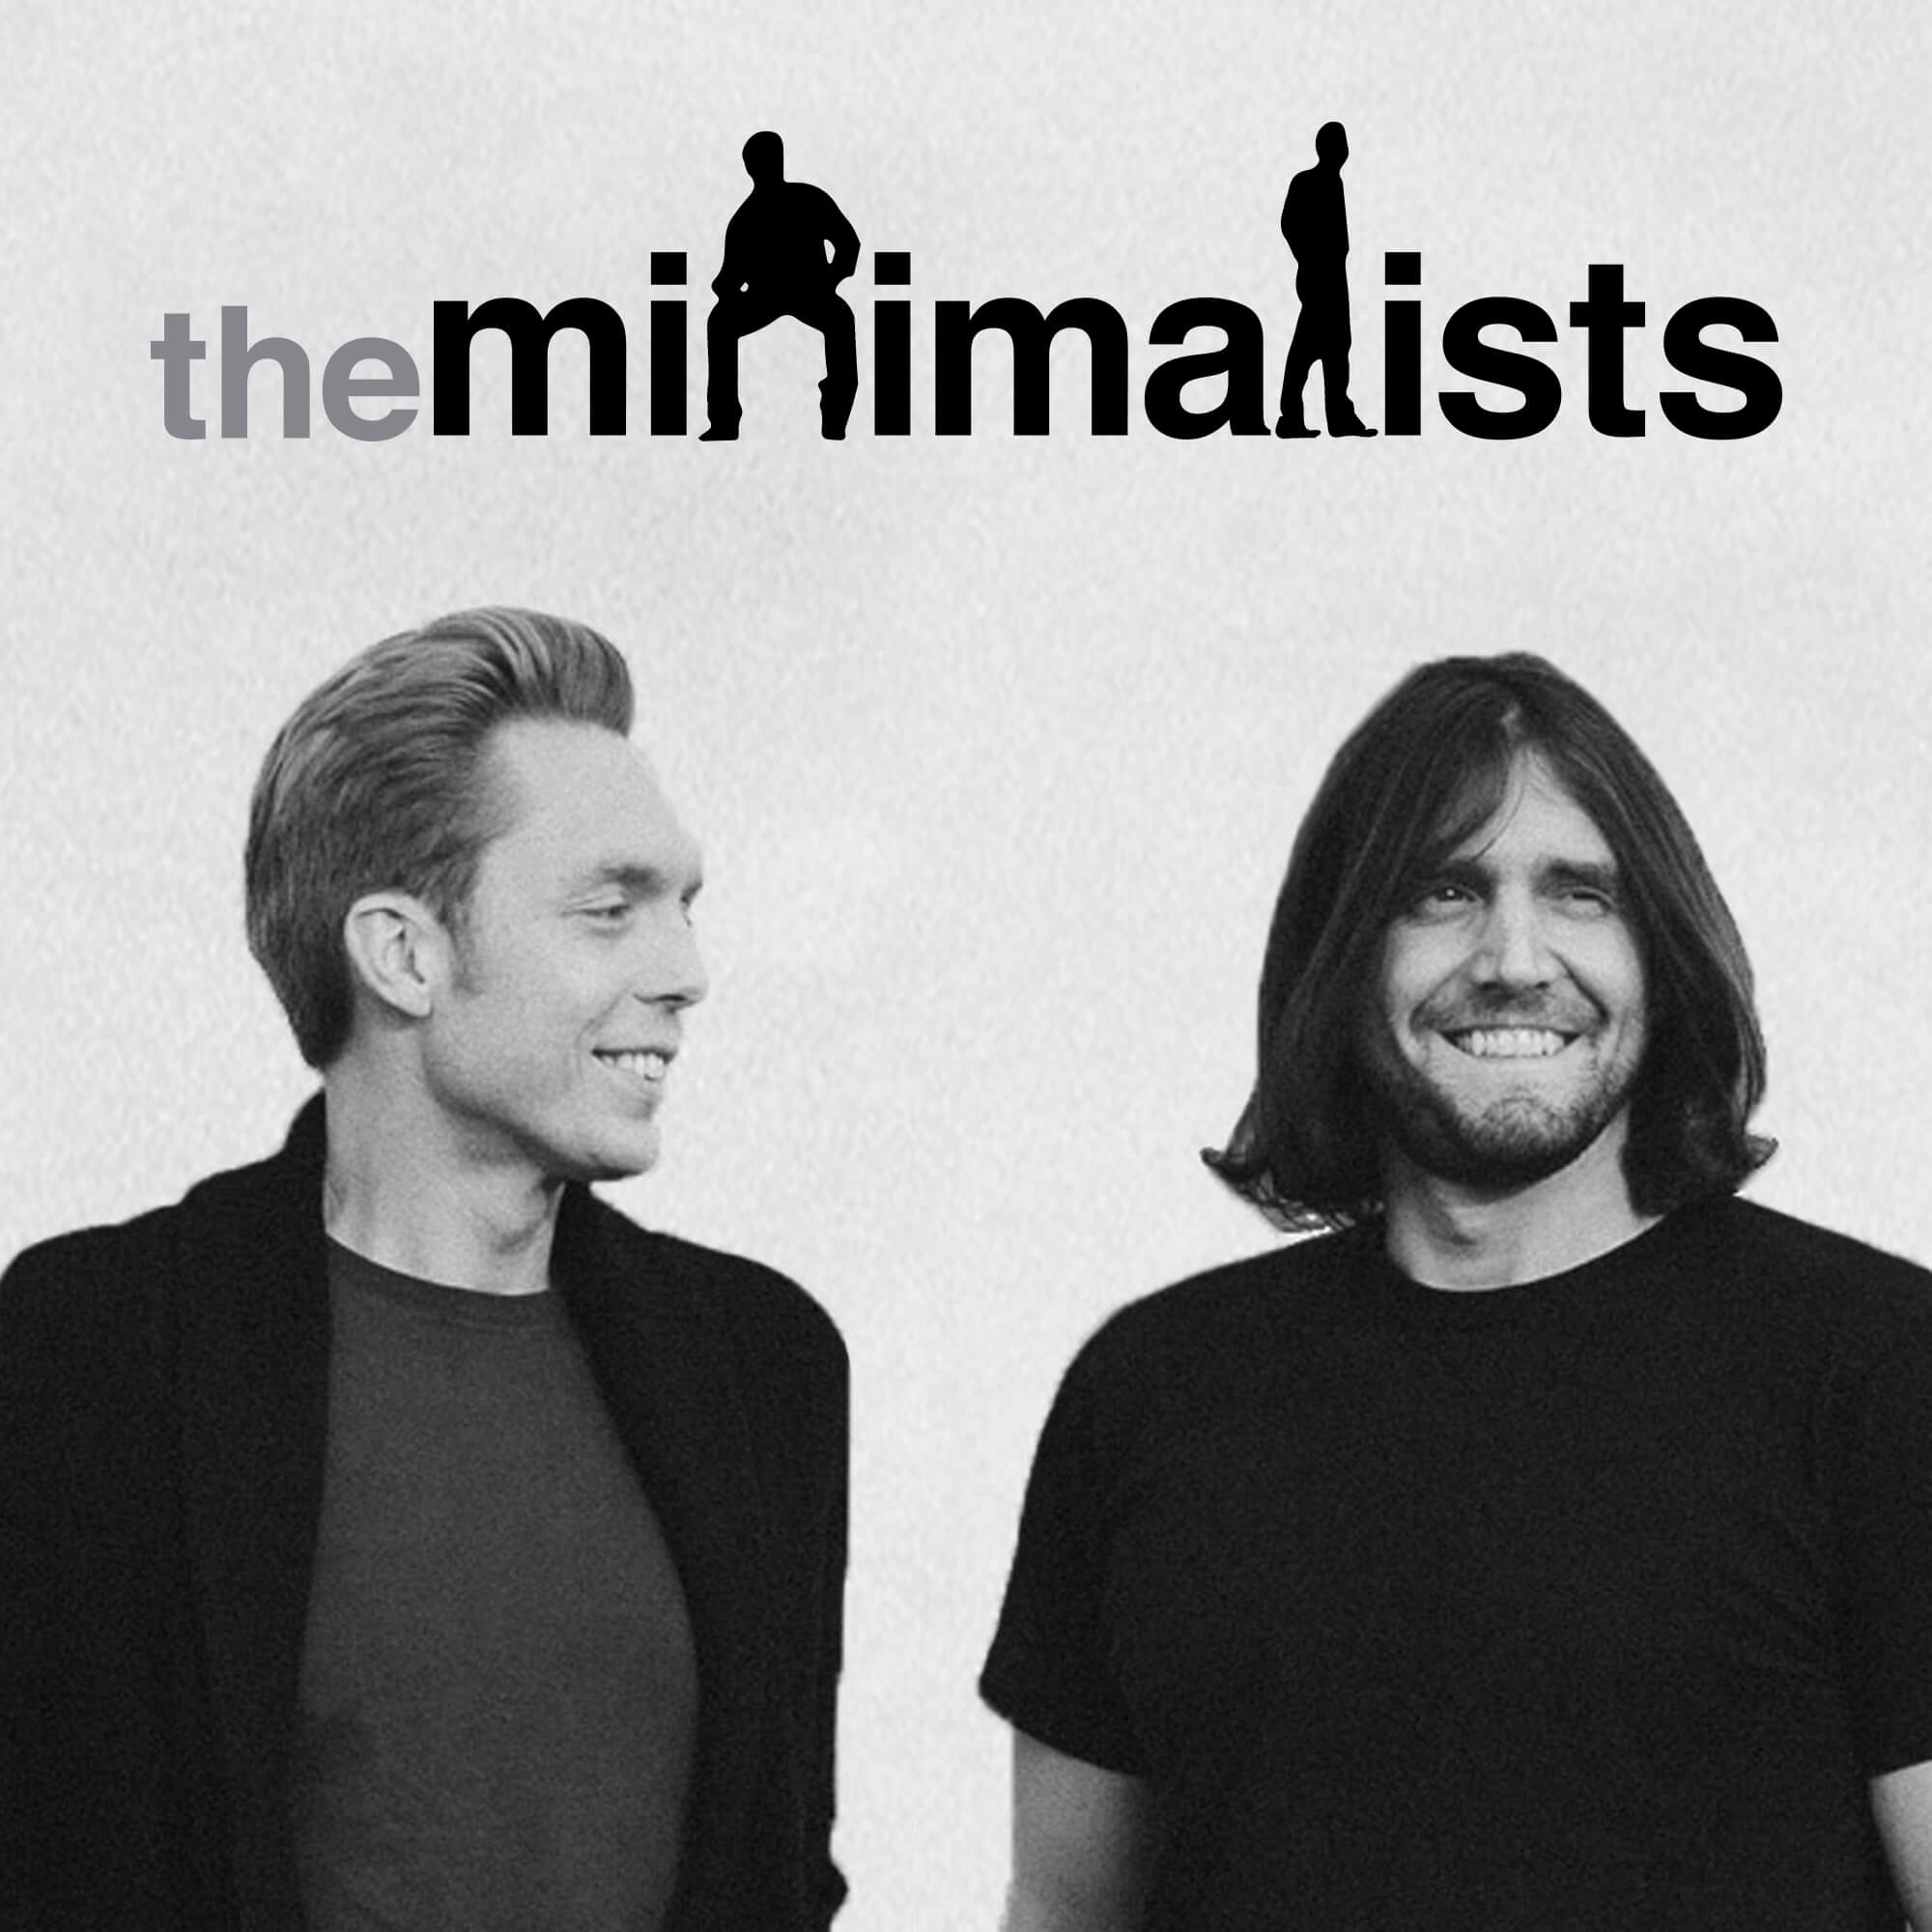 TheMinimalists Podcast